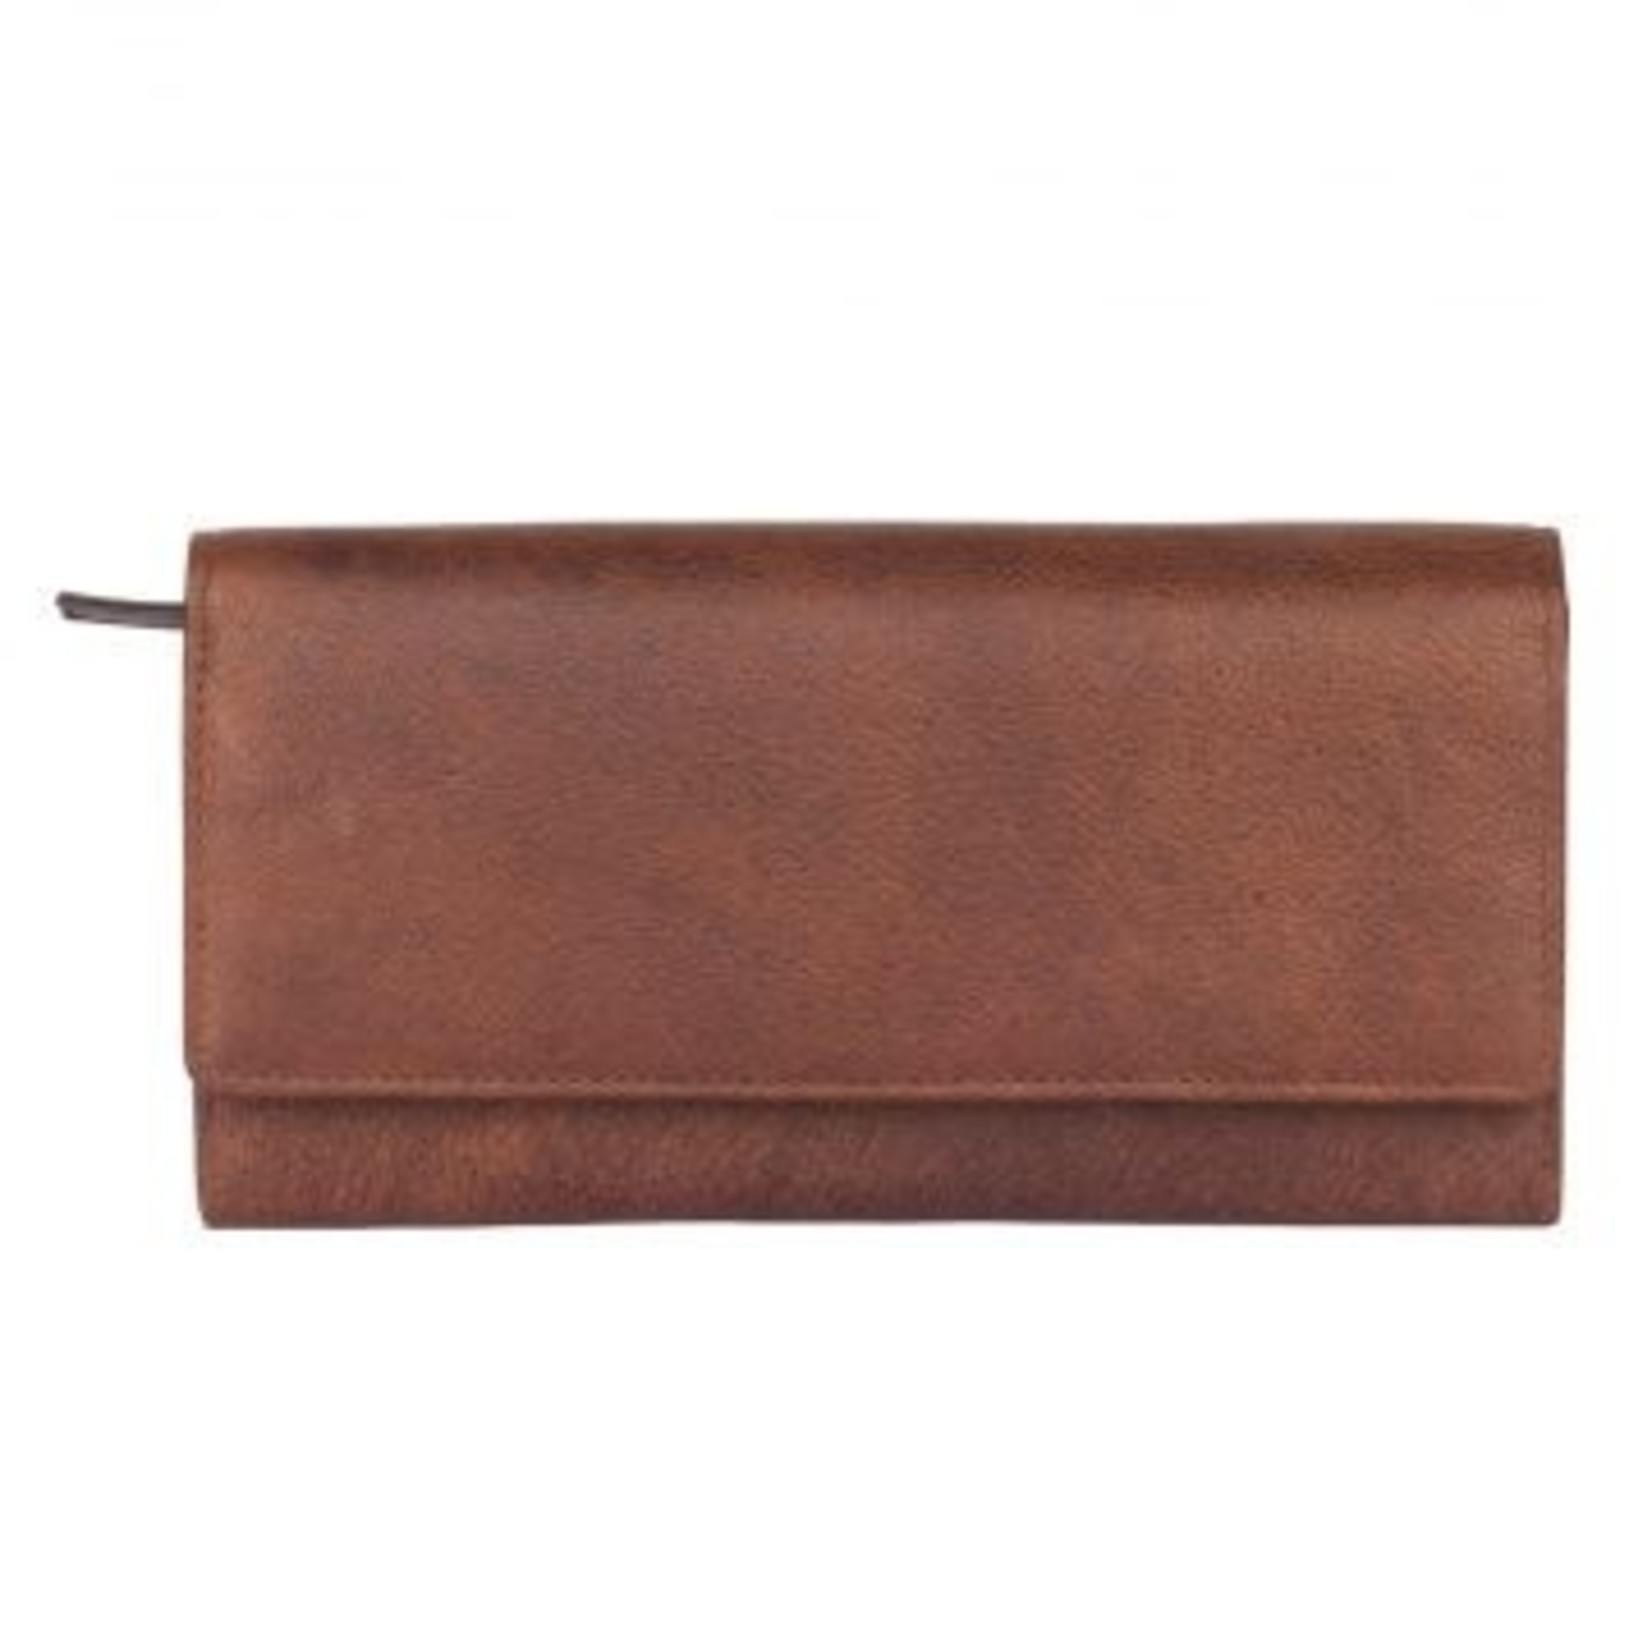 Myra Bag Wallet: Exquiste Leather